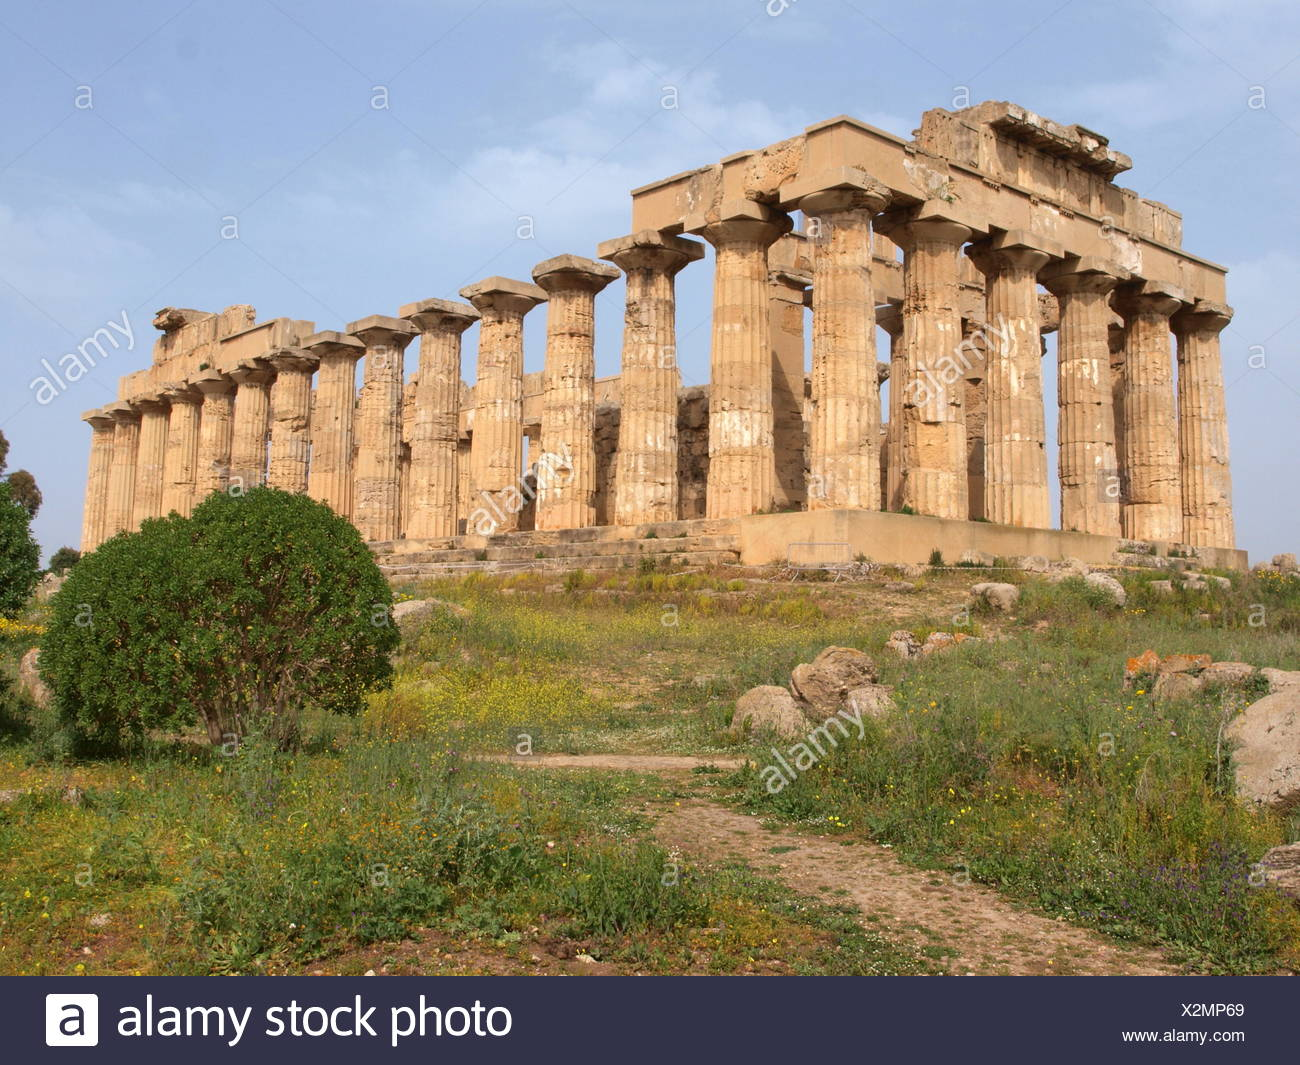 Temple of Hera at Selinunte, Sicily, Italy - Stock Image